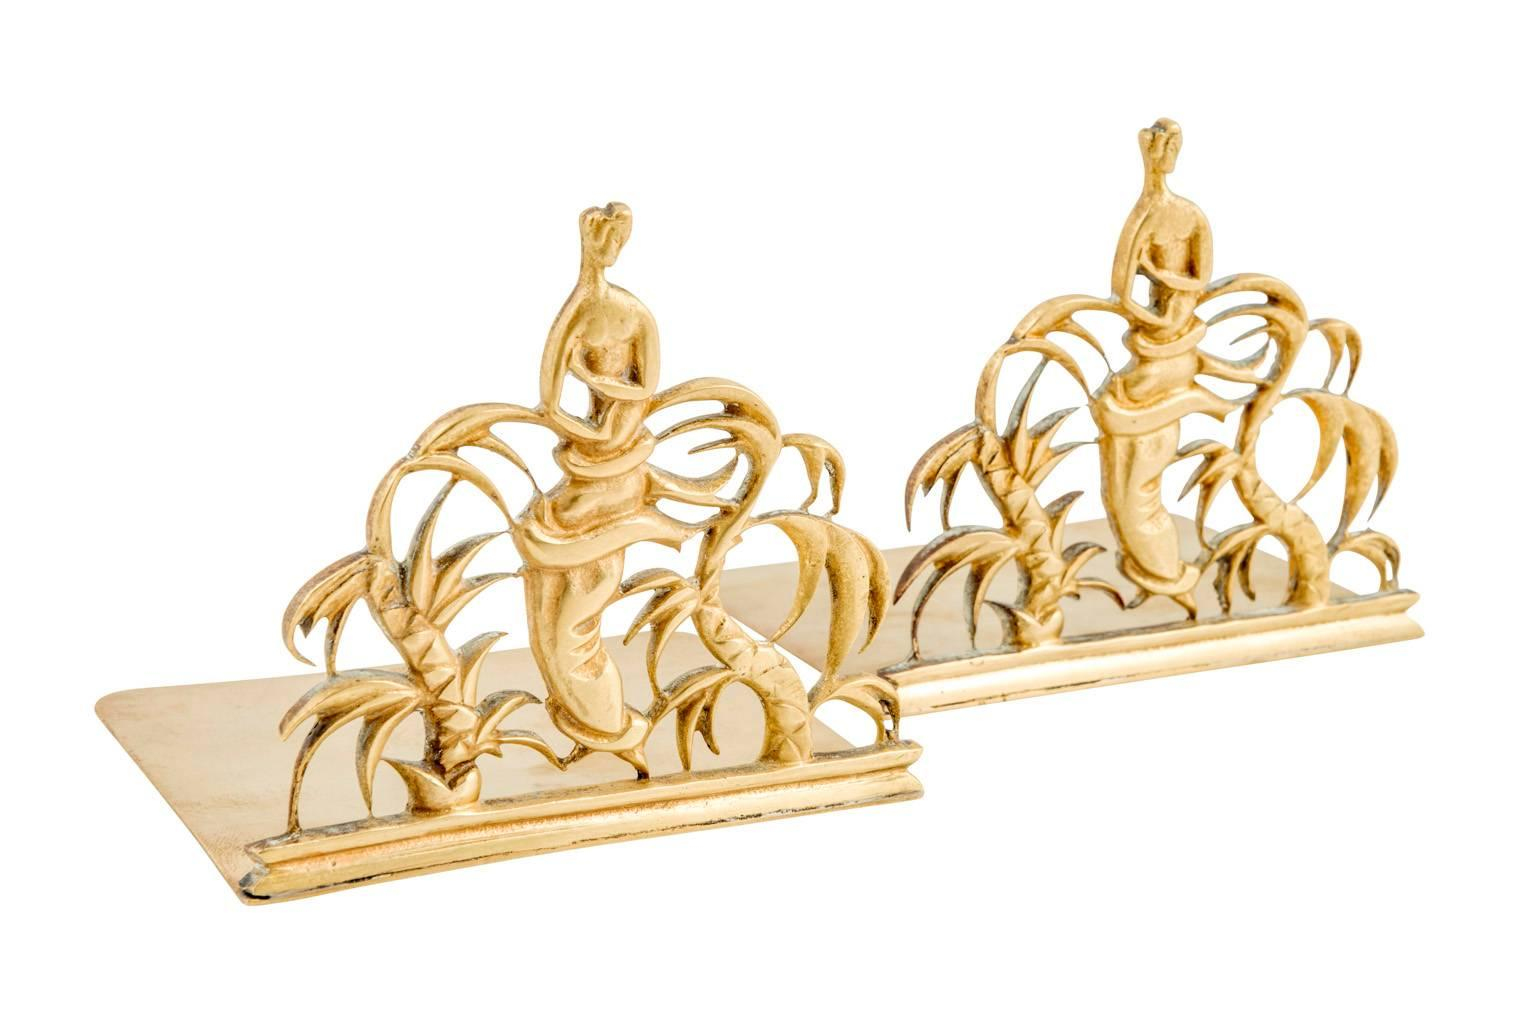 268669f508 Two Bookends Werkstatte Hagenauer Wien Designed by Karl Hagenauer Brass For  Sale at 1stdibs